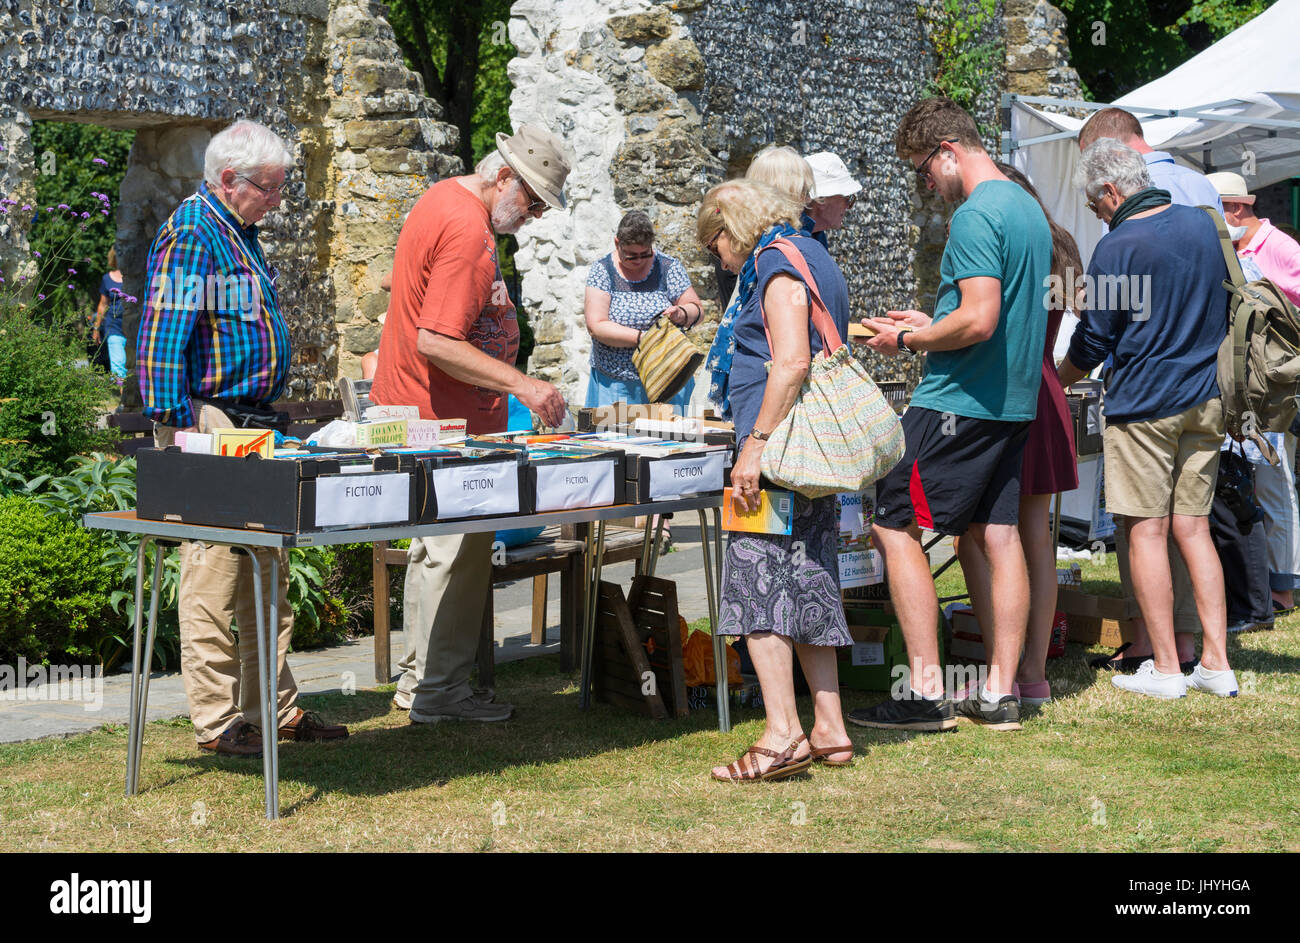 People at a stall selling books at a fete as part of a Summer charity event in the UK. Raising money for charity. - Stock Image